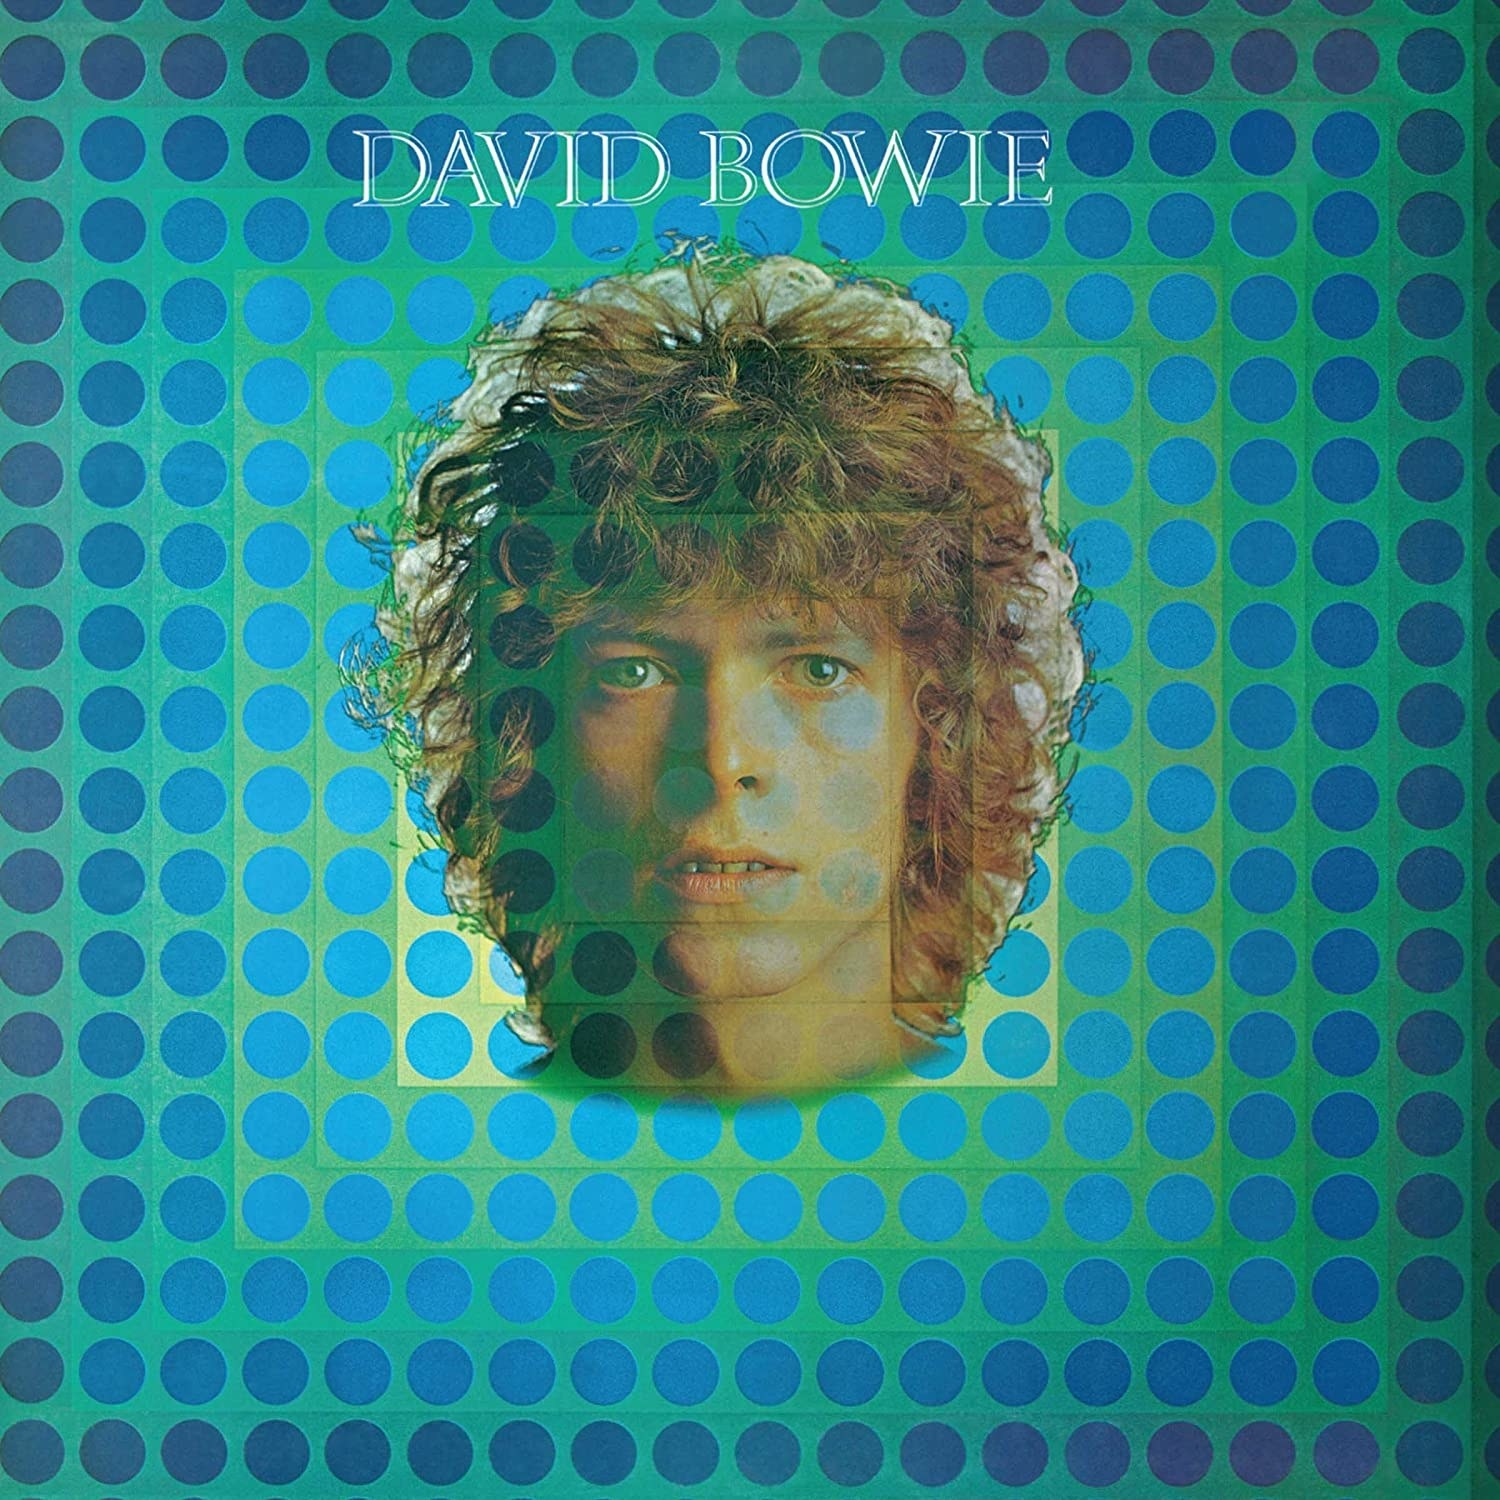 album cover of David Bowie showing a transparent image of Bowie's face